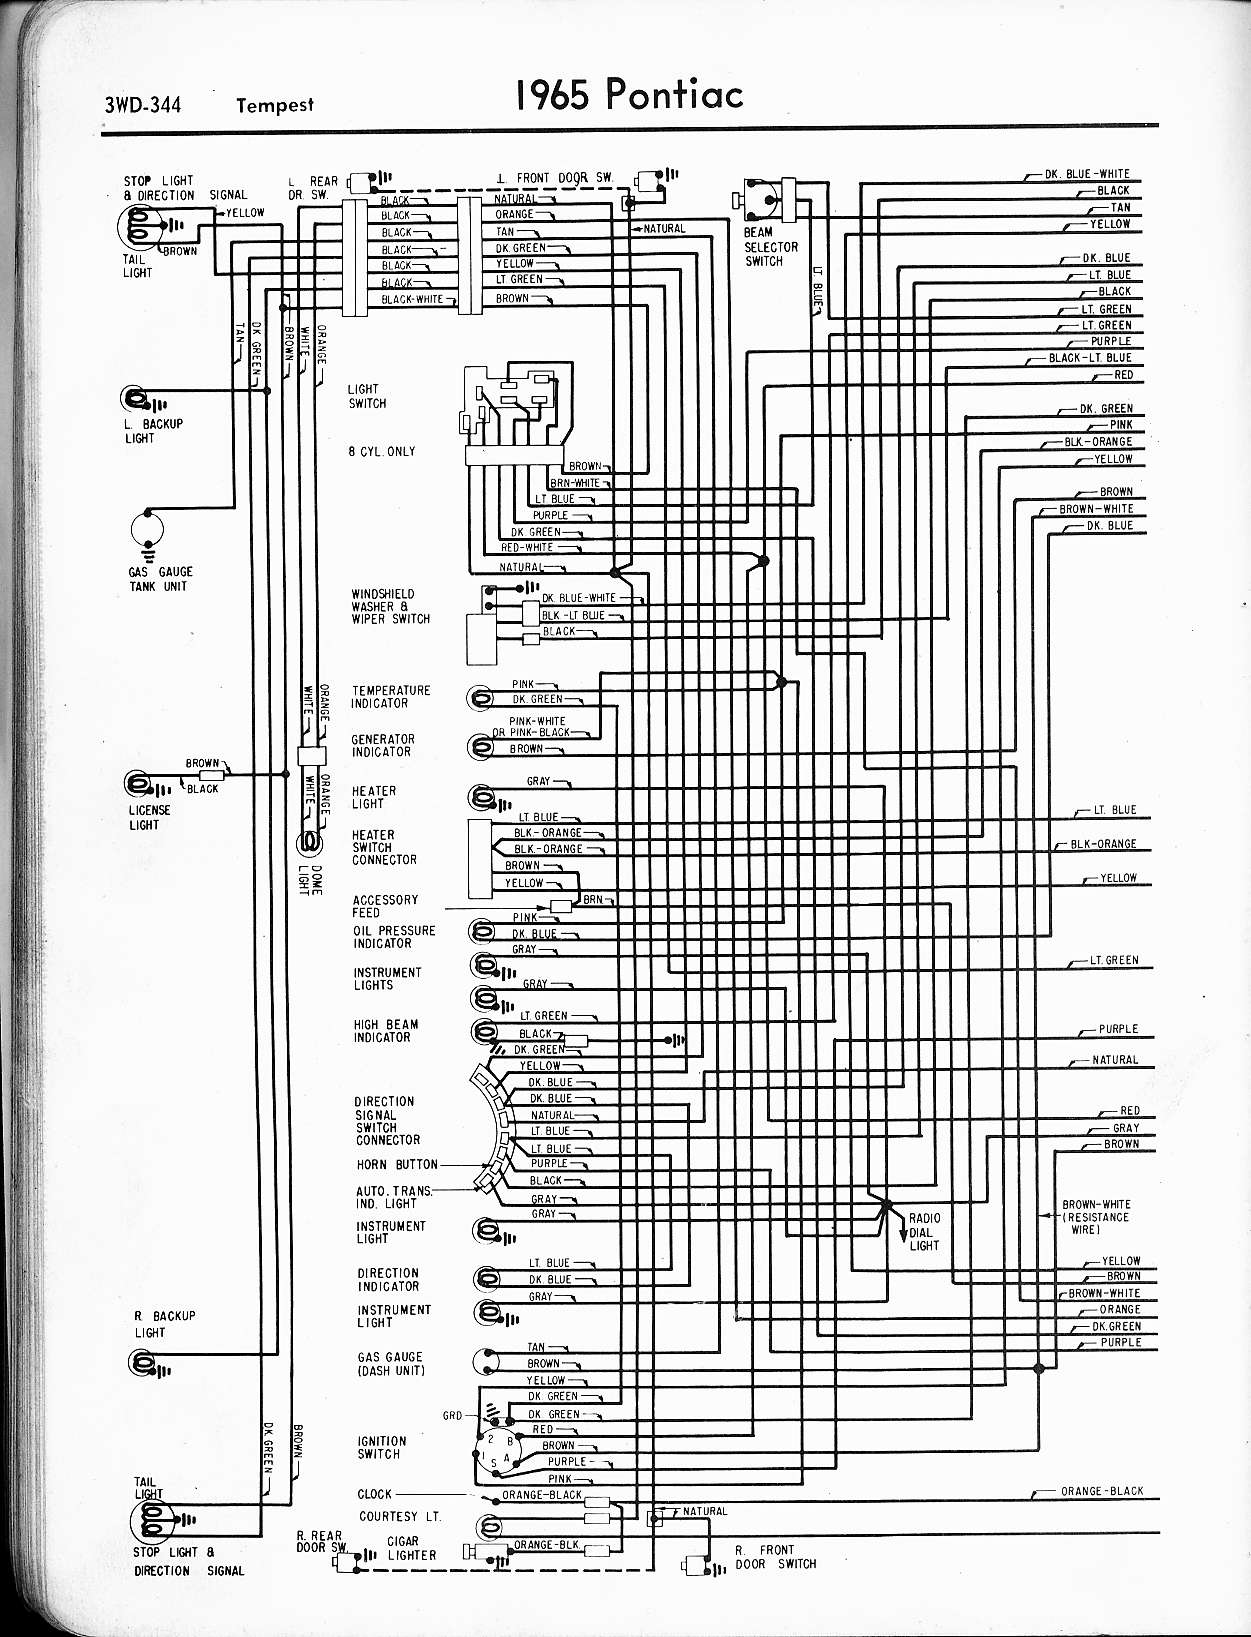 wallace racing wiring diagrams rh wallaceracing com 1970 pontiac lemans wiring diagram 1971 Pontiac Firebird Wiring Diagram